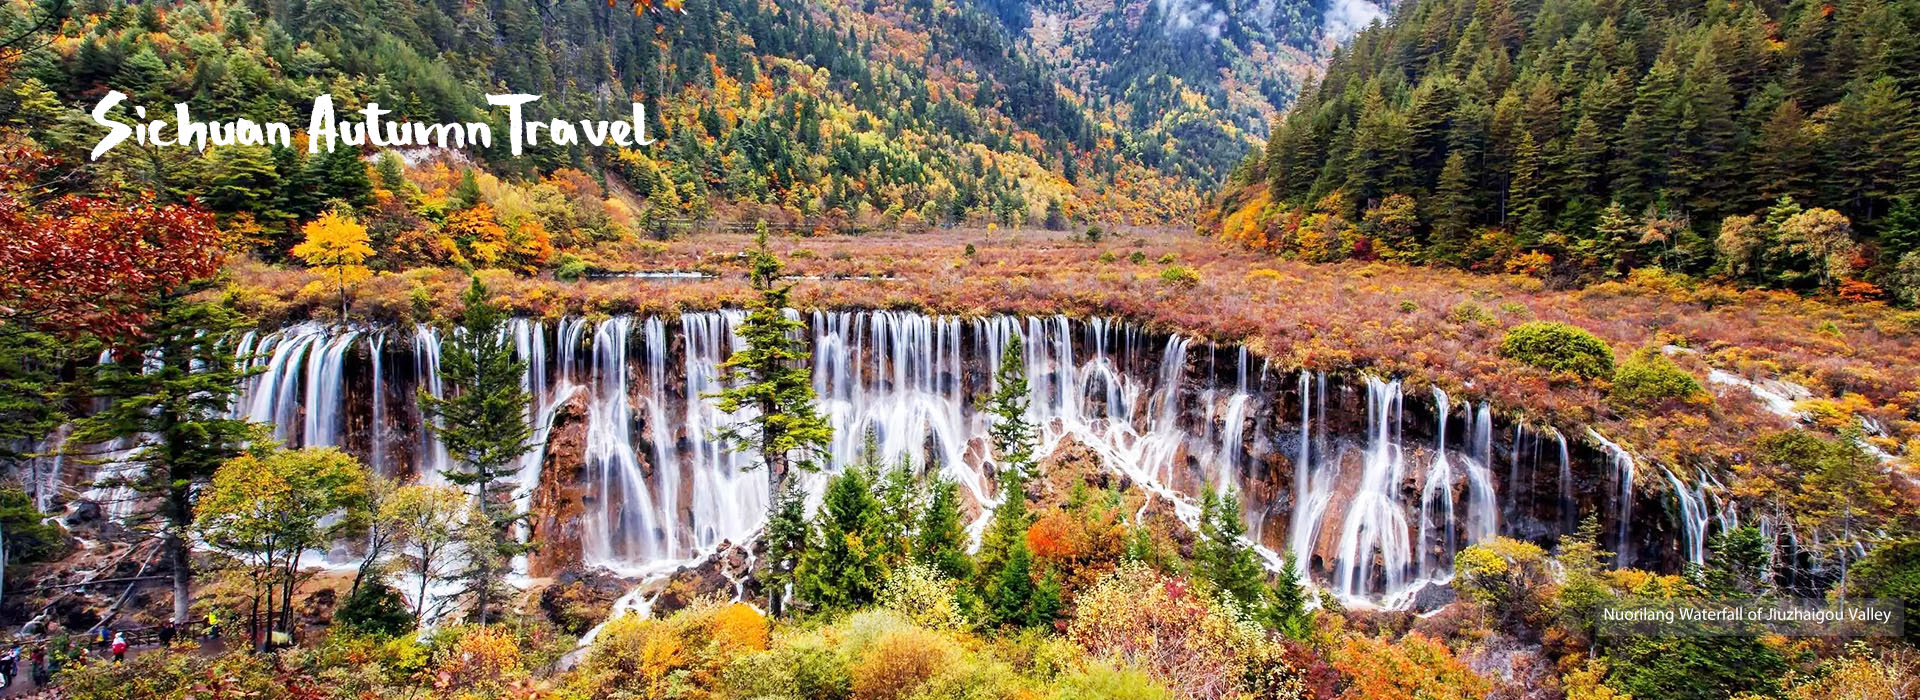 Best Places to Visit in Sichuan in Autumn